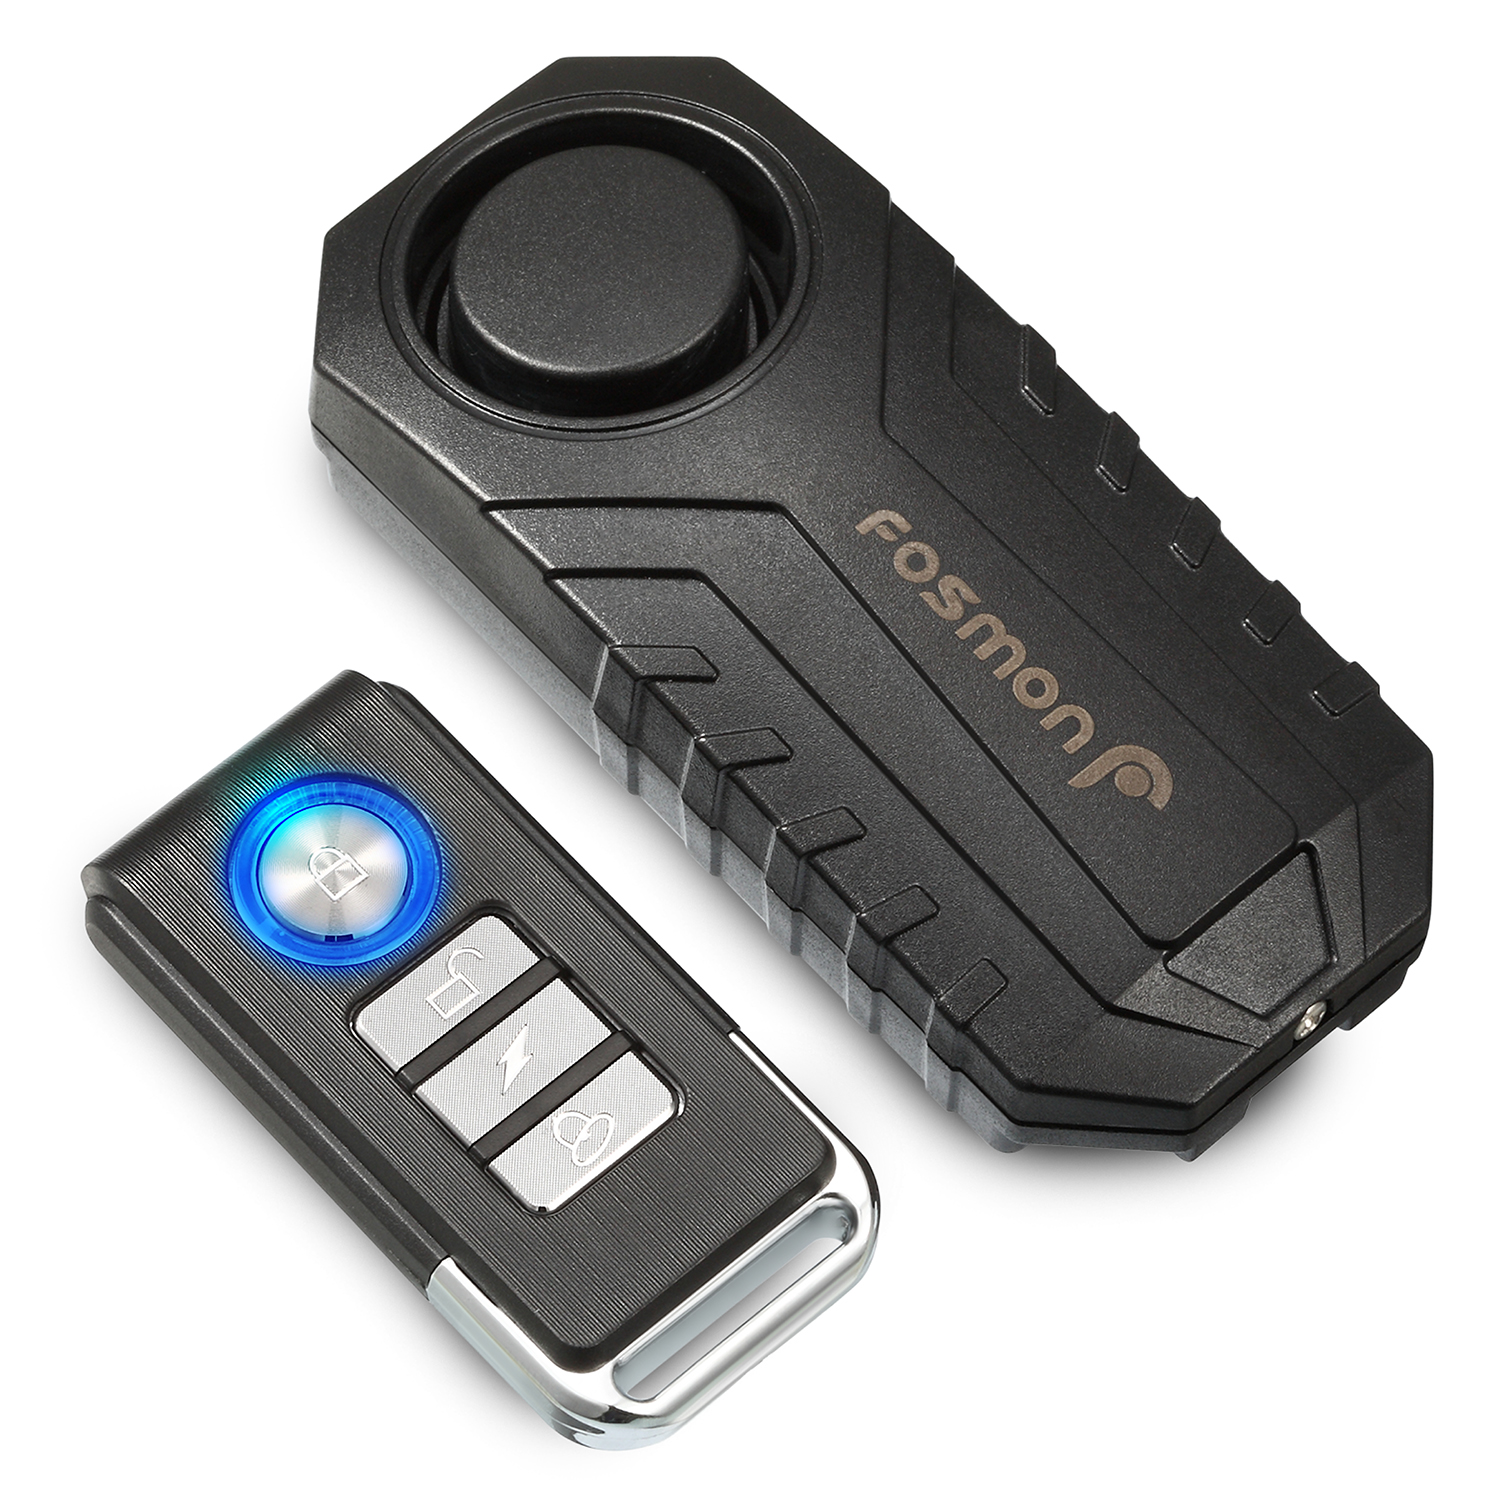 Wireless Bicycle Motorcycle Anti-Theft Alarm 113dB Vibration Remote Control USA